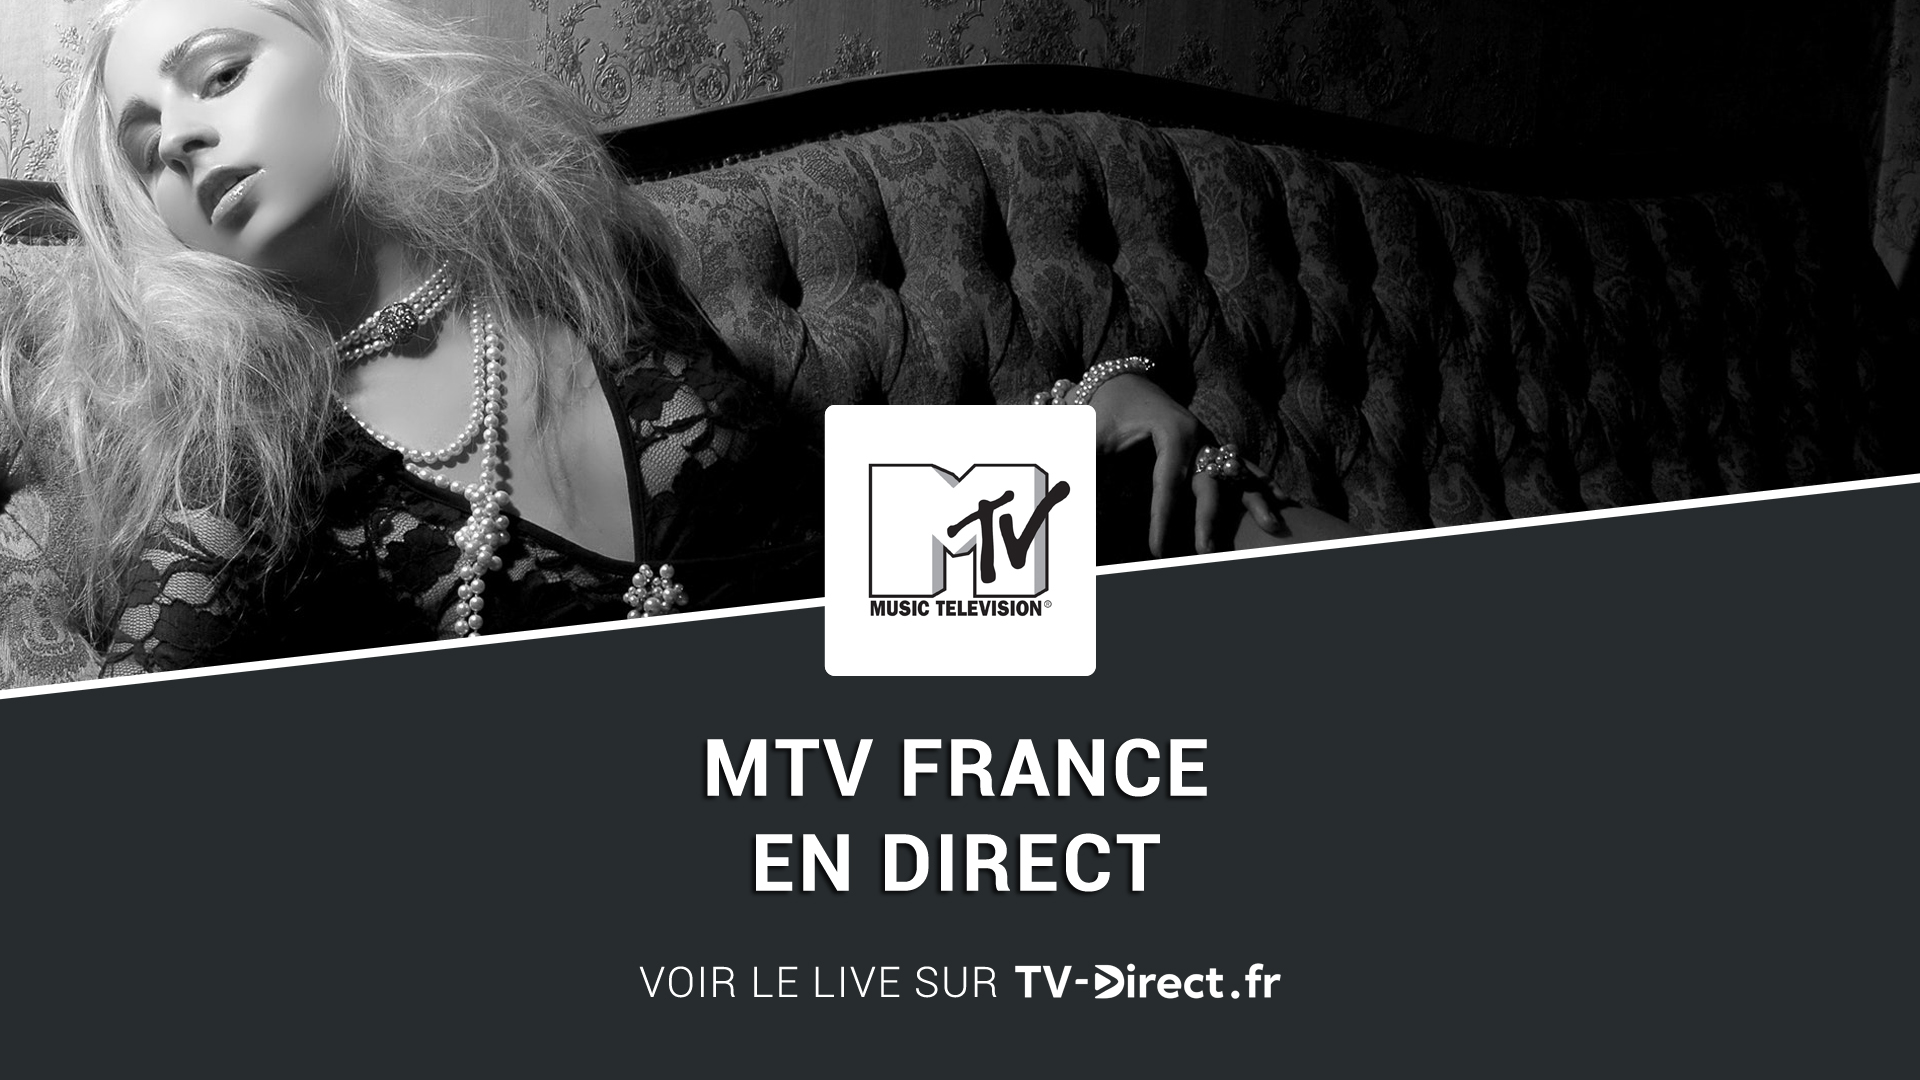 mtv france direct regarder mtv france live sur internet. Black Bedroom Furniture Sets. Home Design Ideas